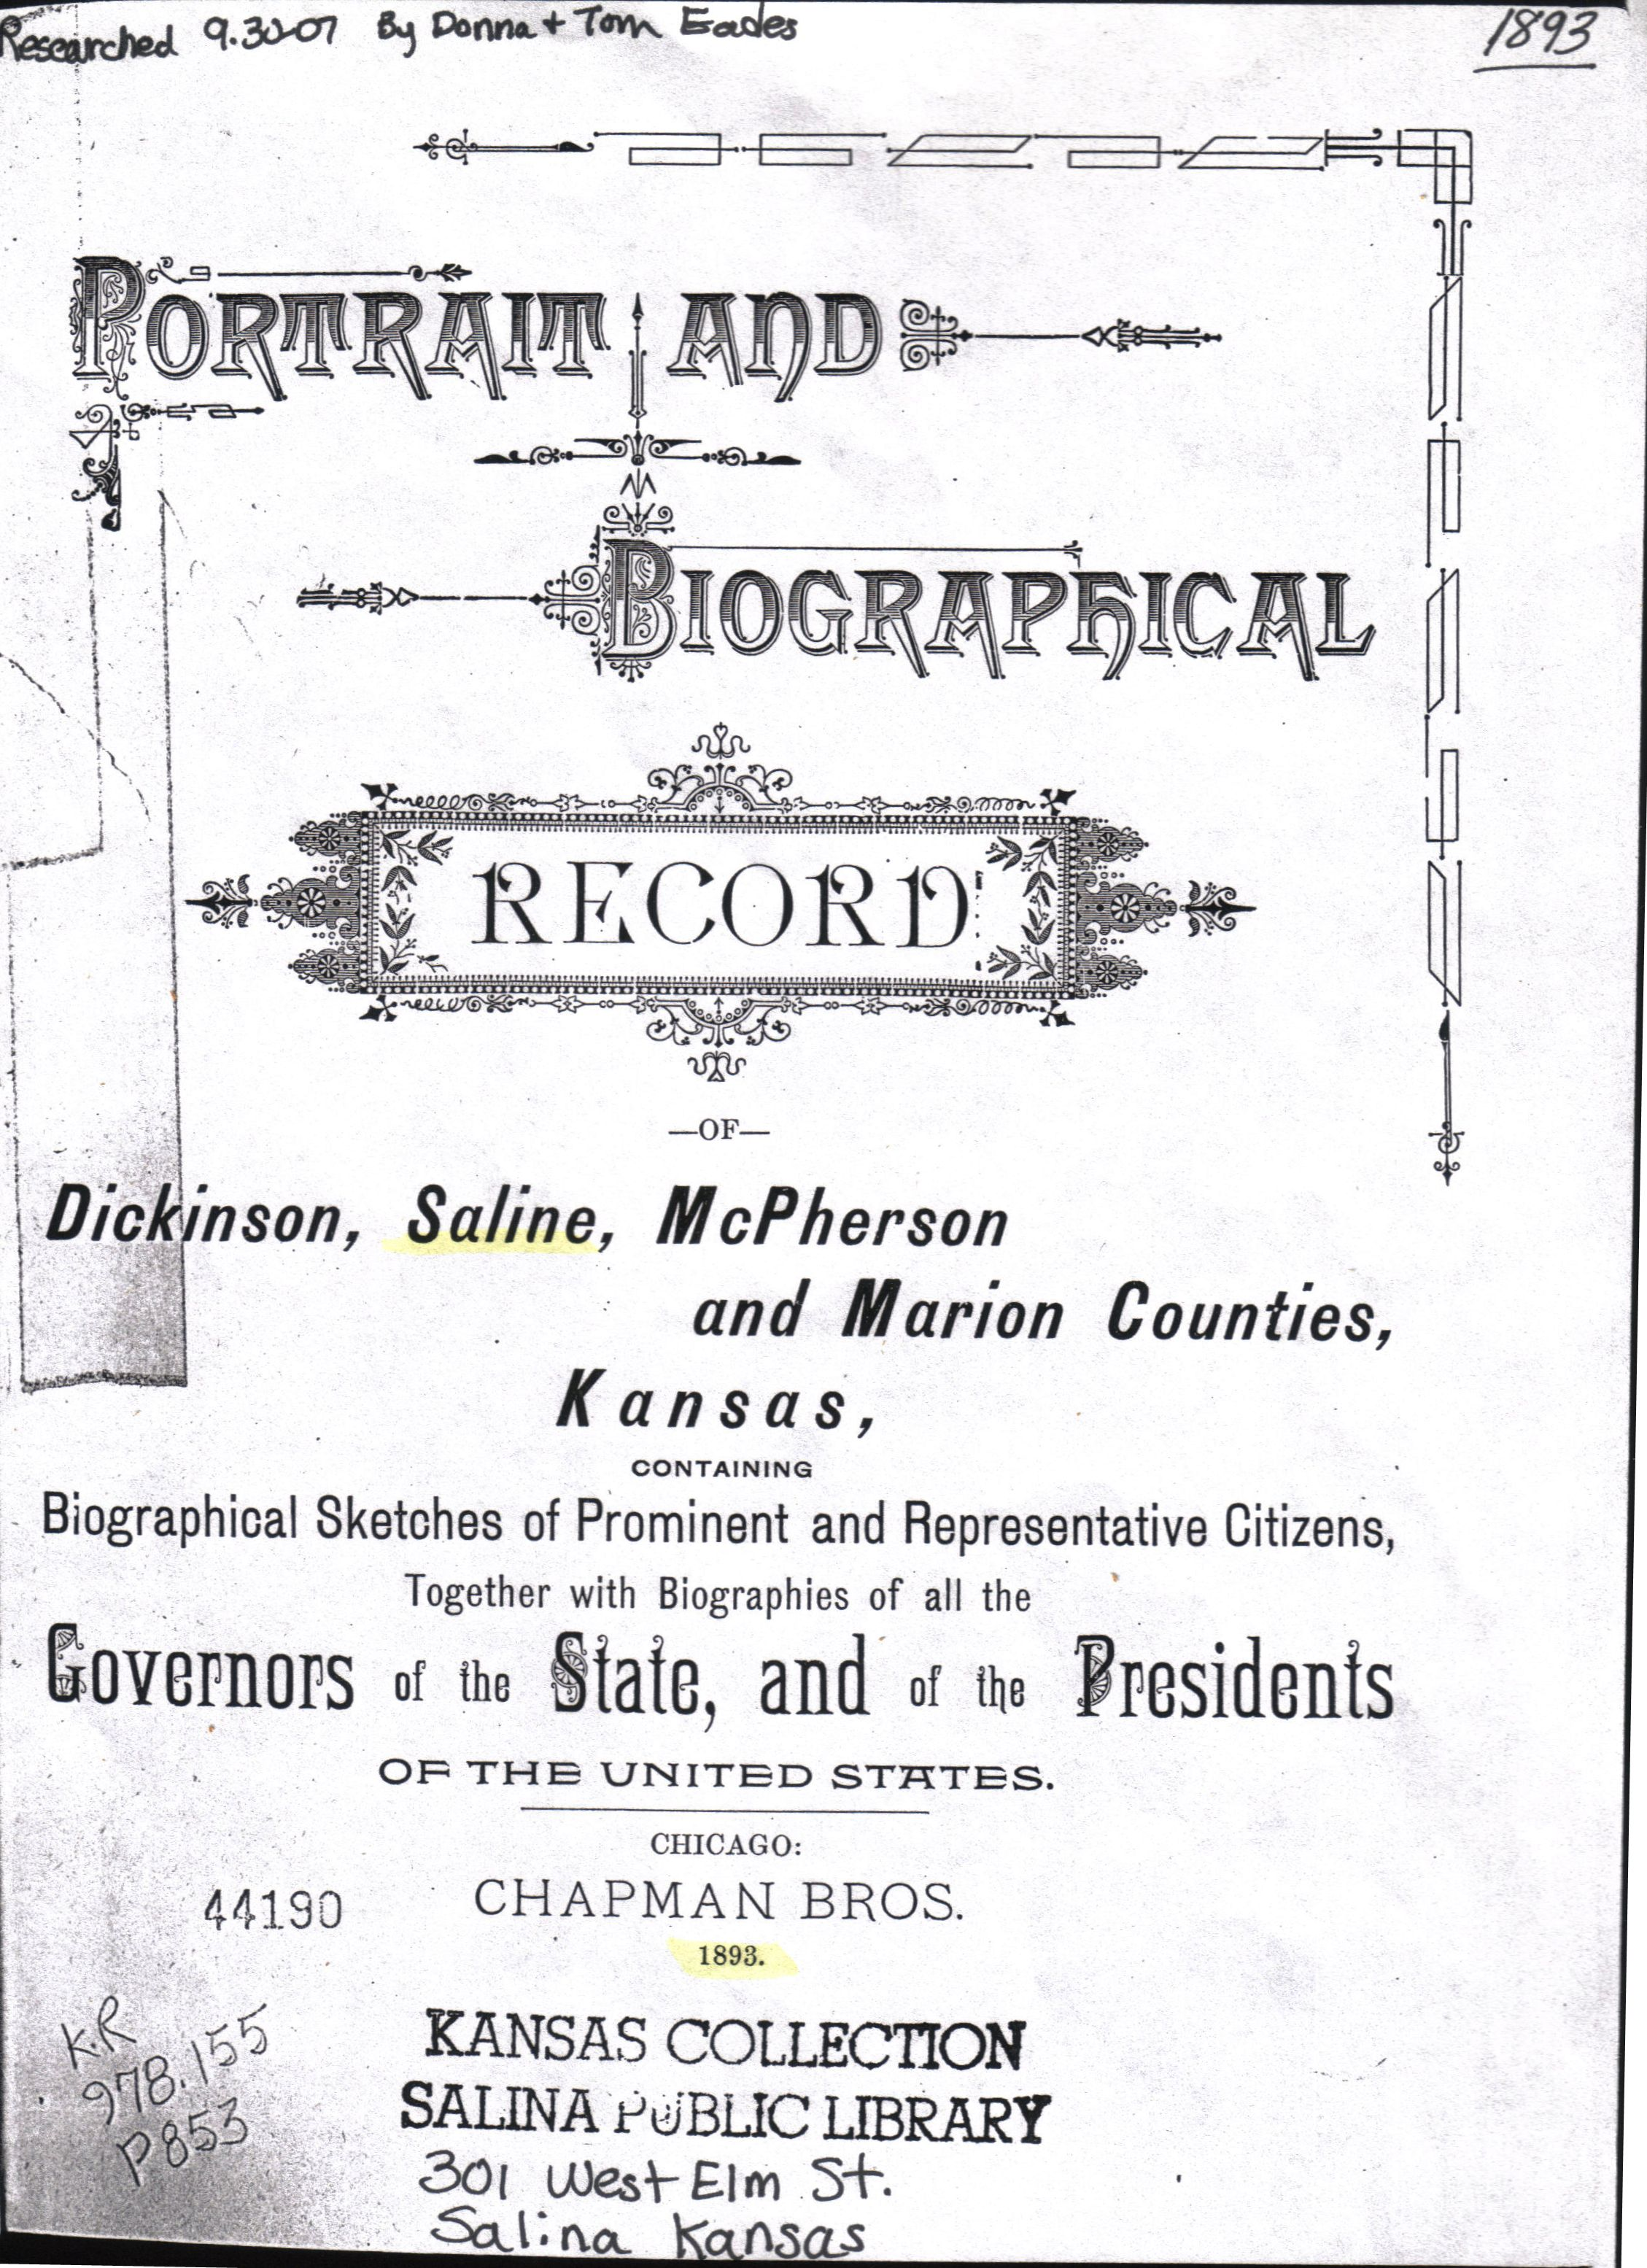 Kansas dickinson county solomon - Tilghman H Strickler Proprietor Of The Solomon City Nursery Is Numbered Among The Prominent Citizens Of Saline County Who Coming To Kansas Without